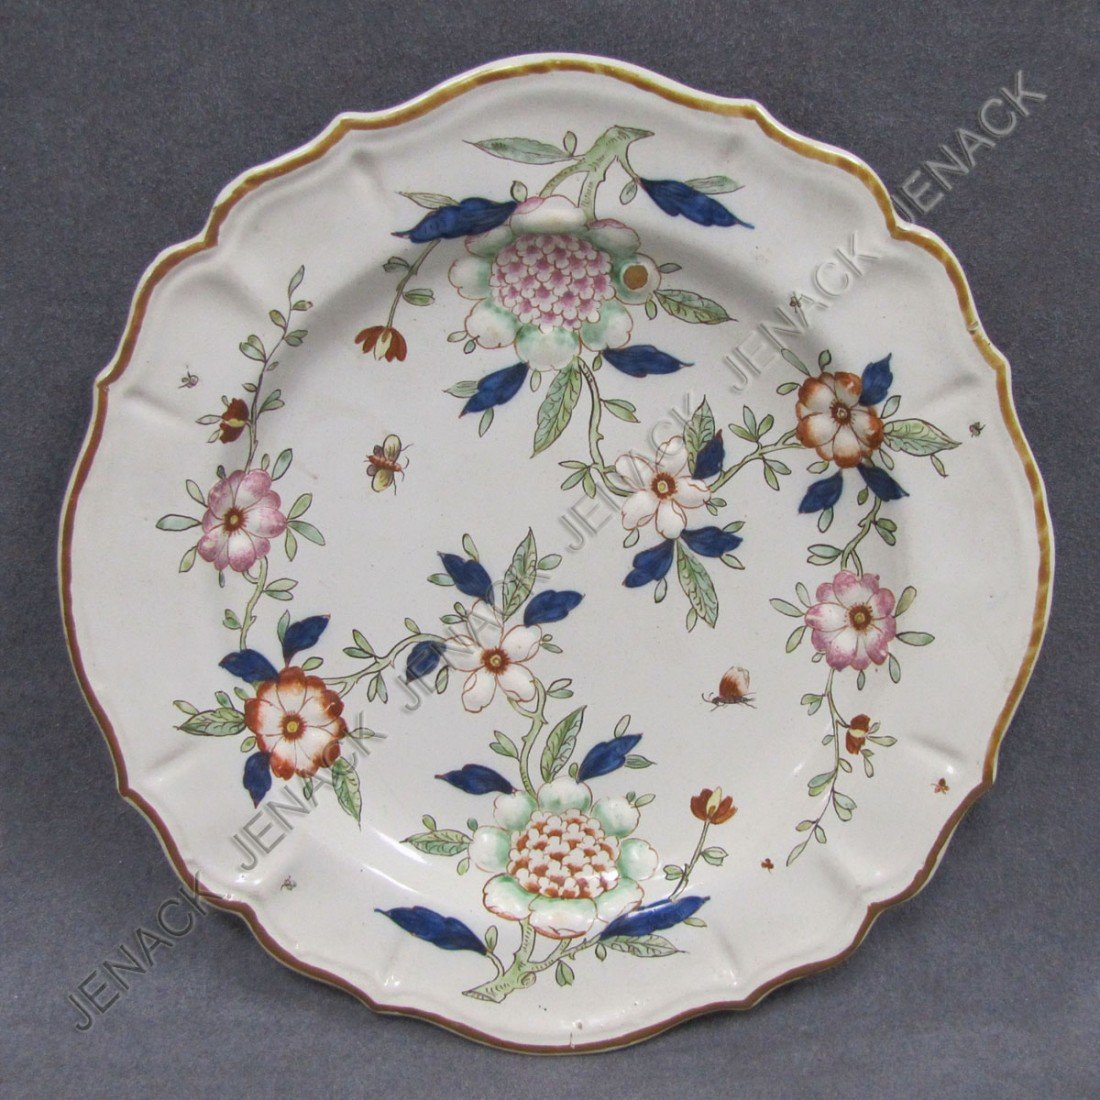 13: FRENCH FAIENCE MOLDED PLATE IN THE CHINESE MANNER